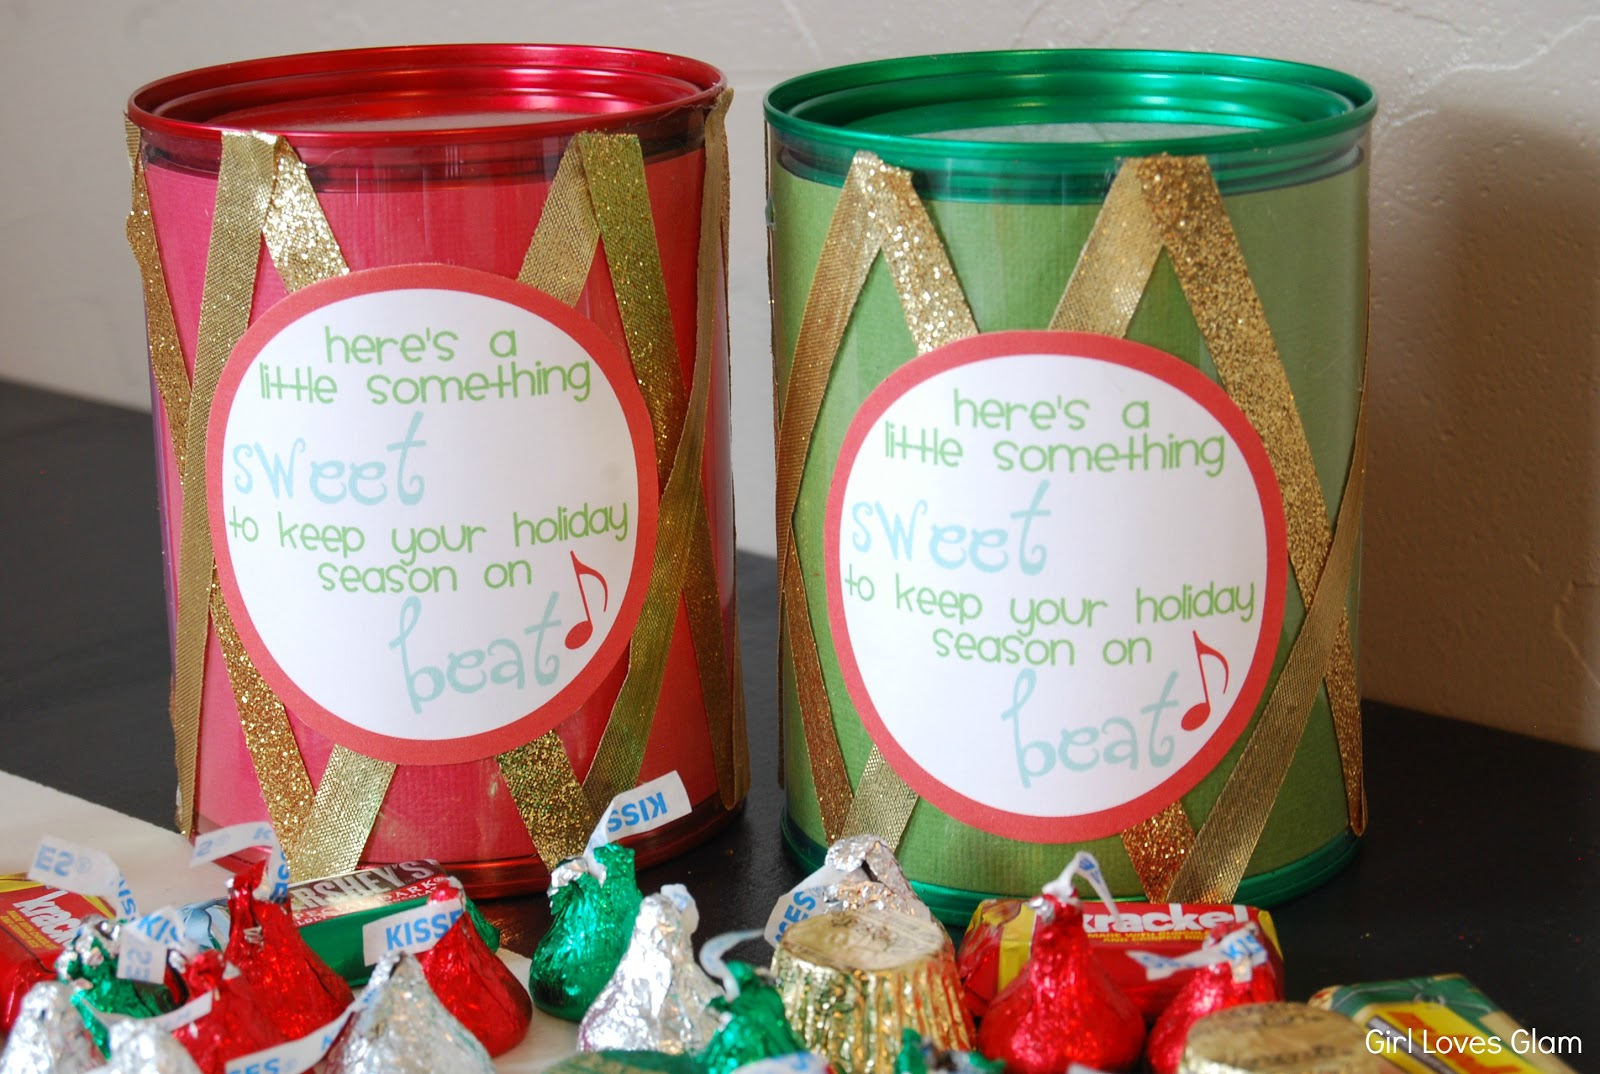 12 Drummers Drumming {Christmas Drum Candy Gift}